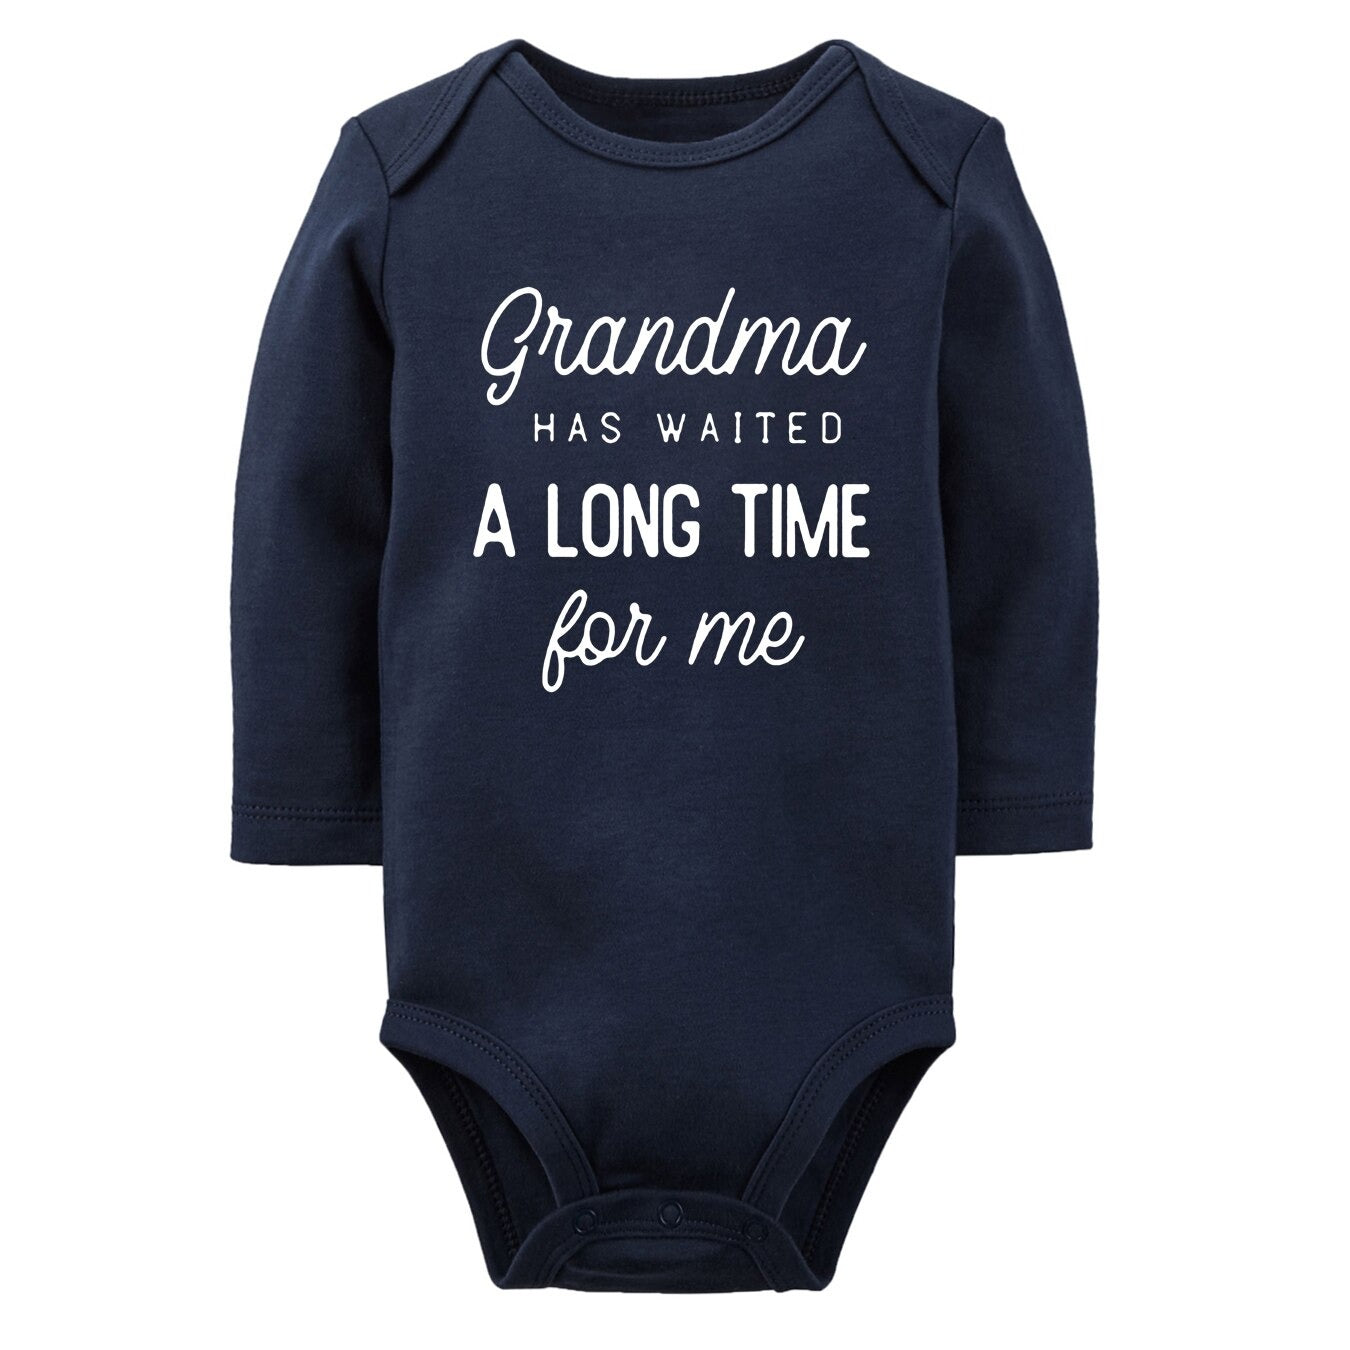 ong-time-letter-printing-new-born-baby-c_description-12